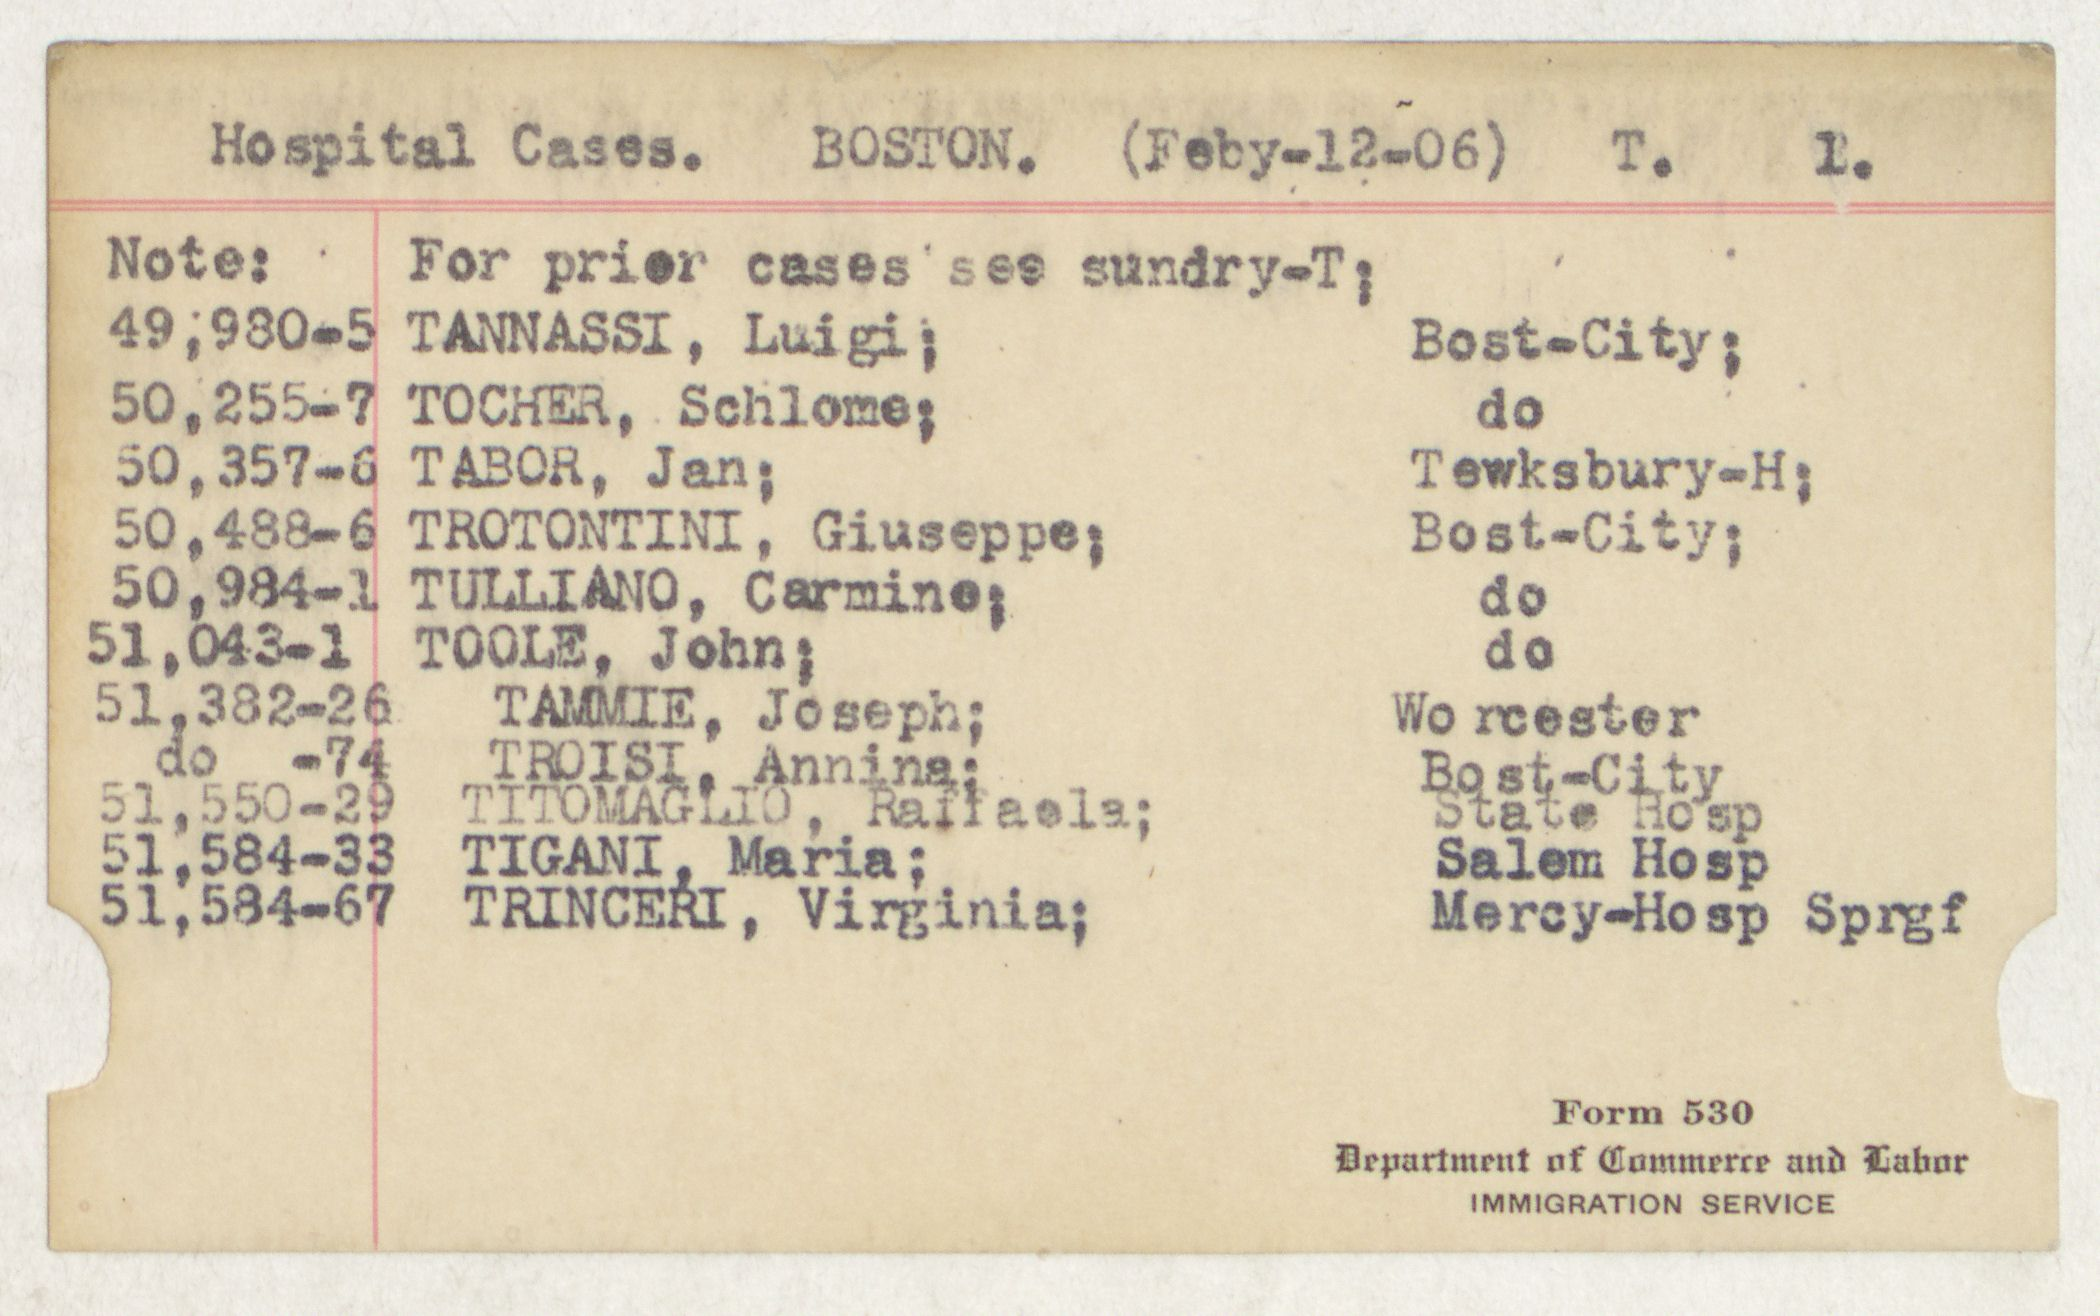 Index Card - T - Hospital Cases - Boston - T - 1